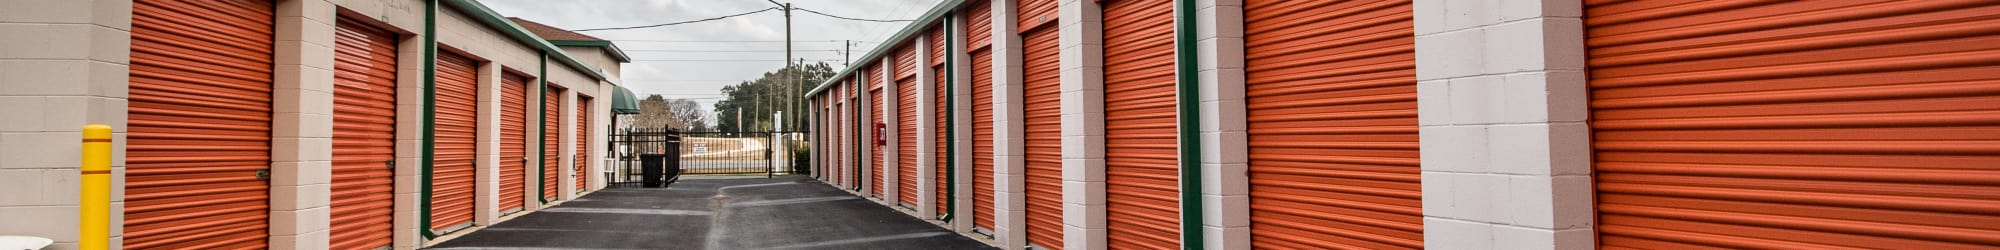 Read what Neighborhood Storage customer's say about their experience